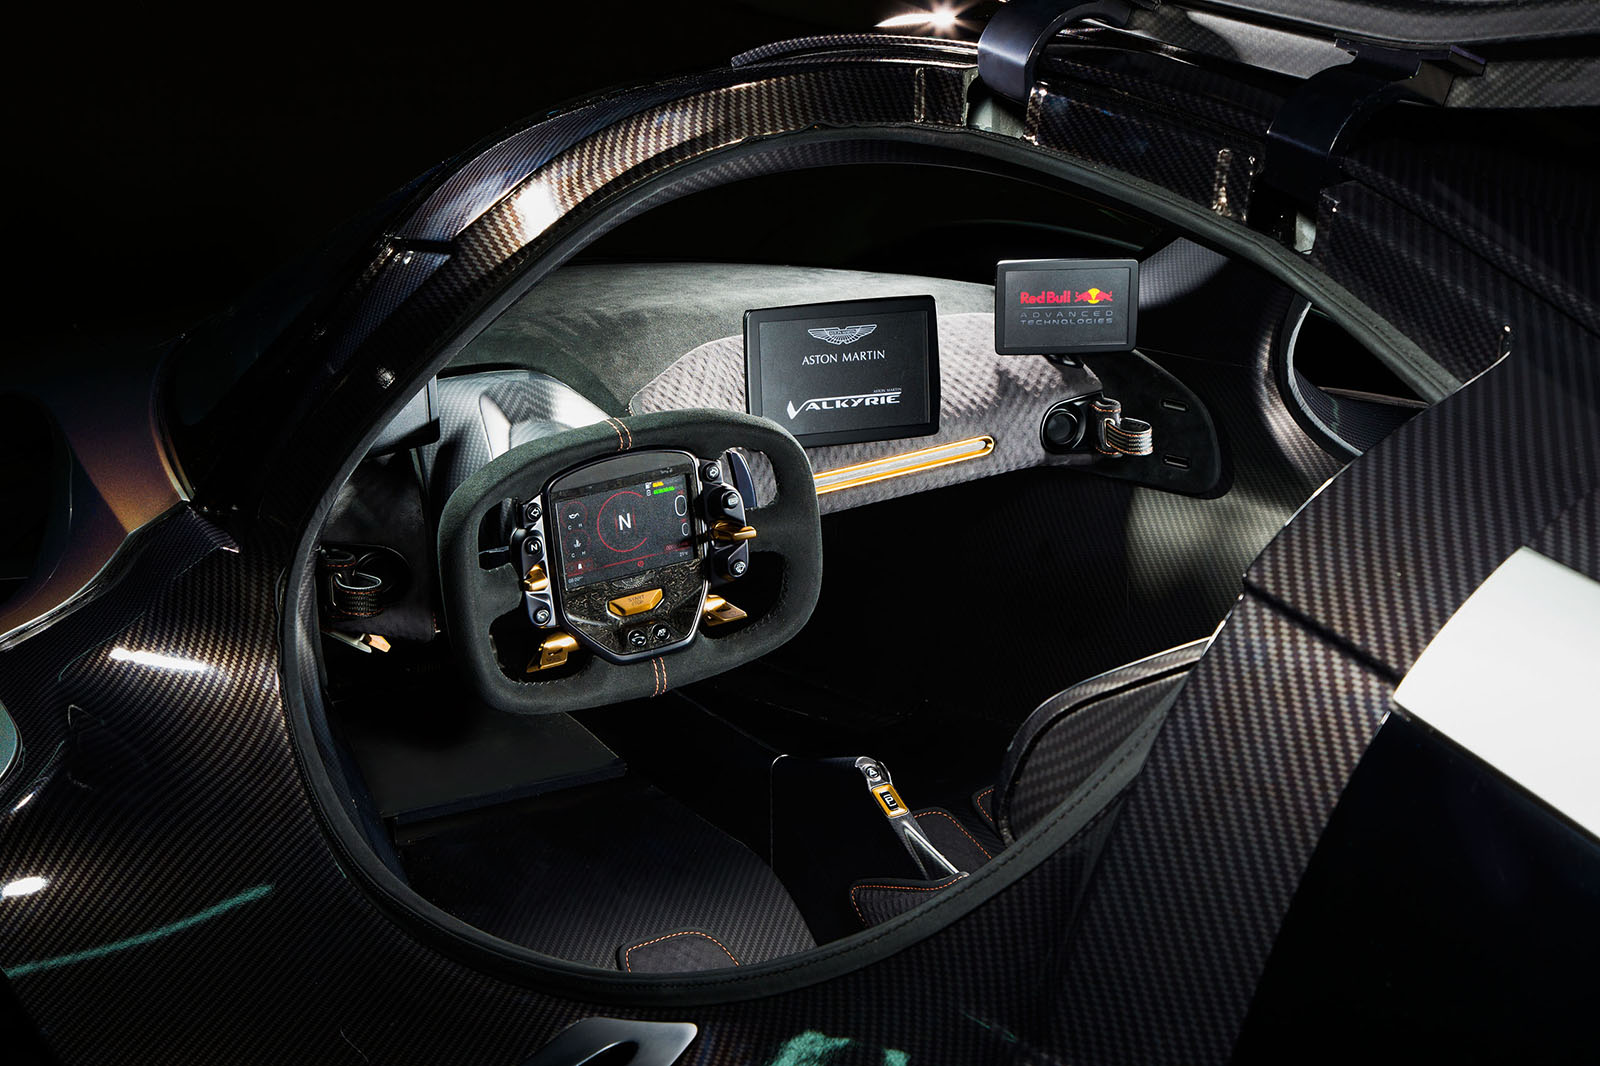 aston martin valkyrie could challenge for outright nurburgring